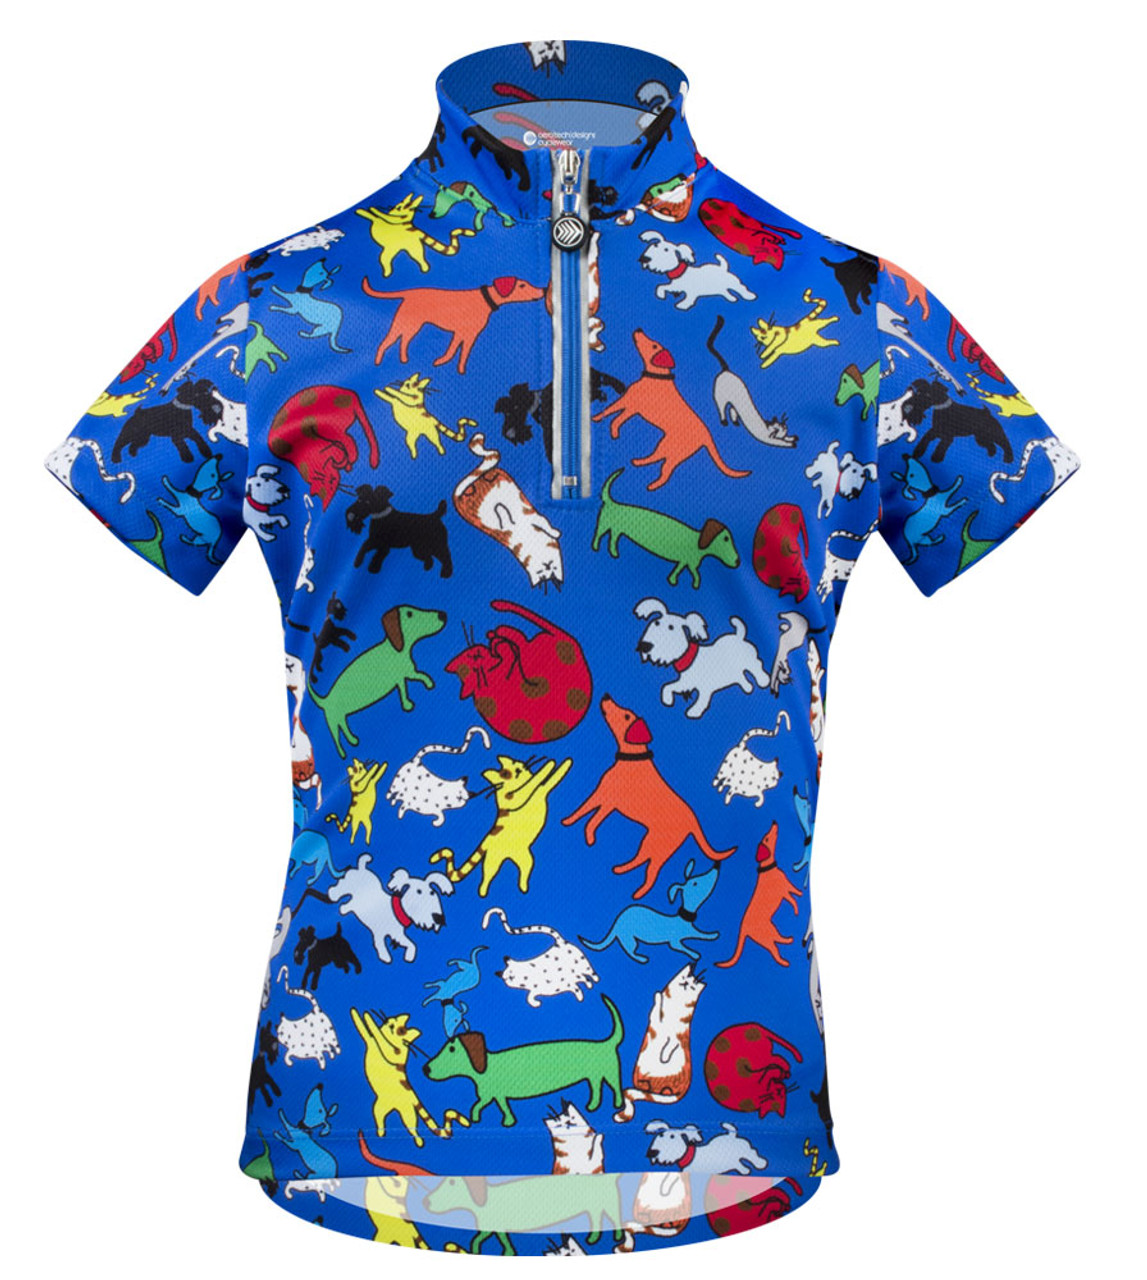 https://cdn7.bigcommerce.com/s-cmcj94sbu5/images/stencil/1280x1280/products/2827/11566/atd-child-s-designer-cycling-jersey-it-s-raining-cats-and-dogs-blue-80__31904.1508169818.jpg?c=2&imbypass=on&imbypass=on